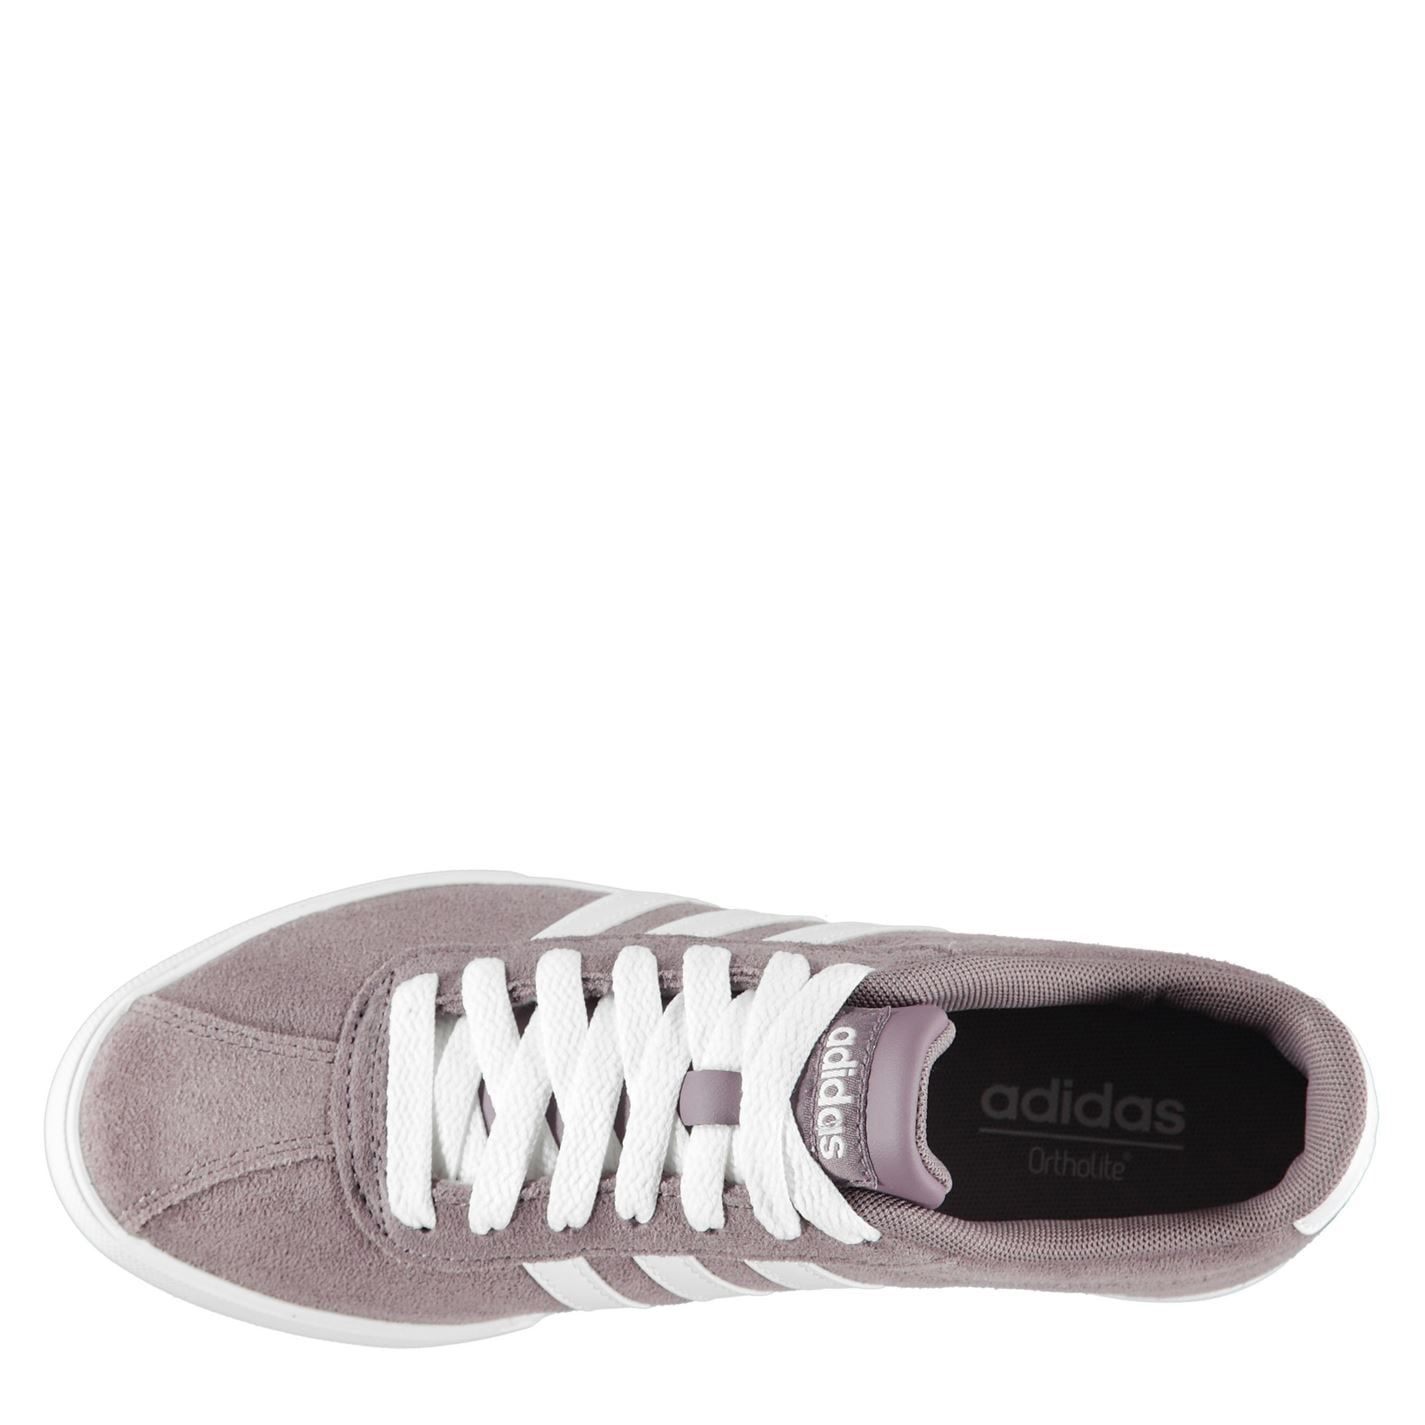 adidas Courtset Suede Trainers Womens